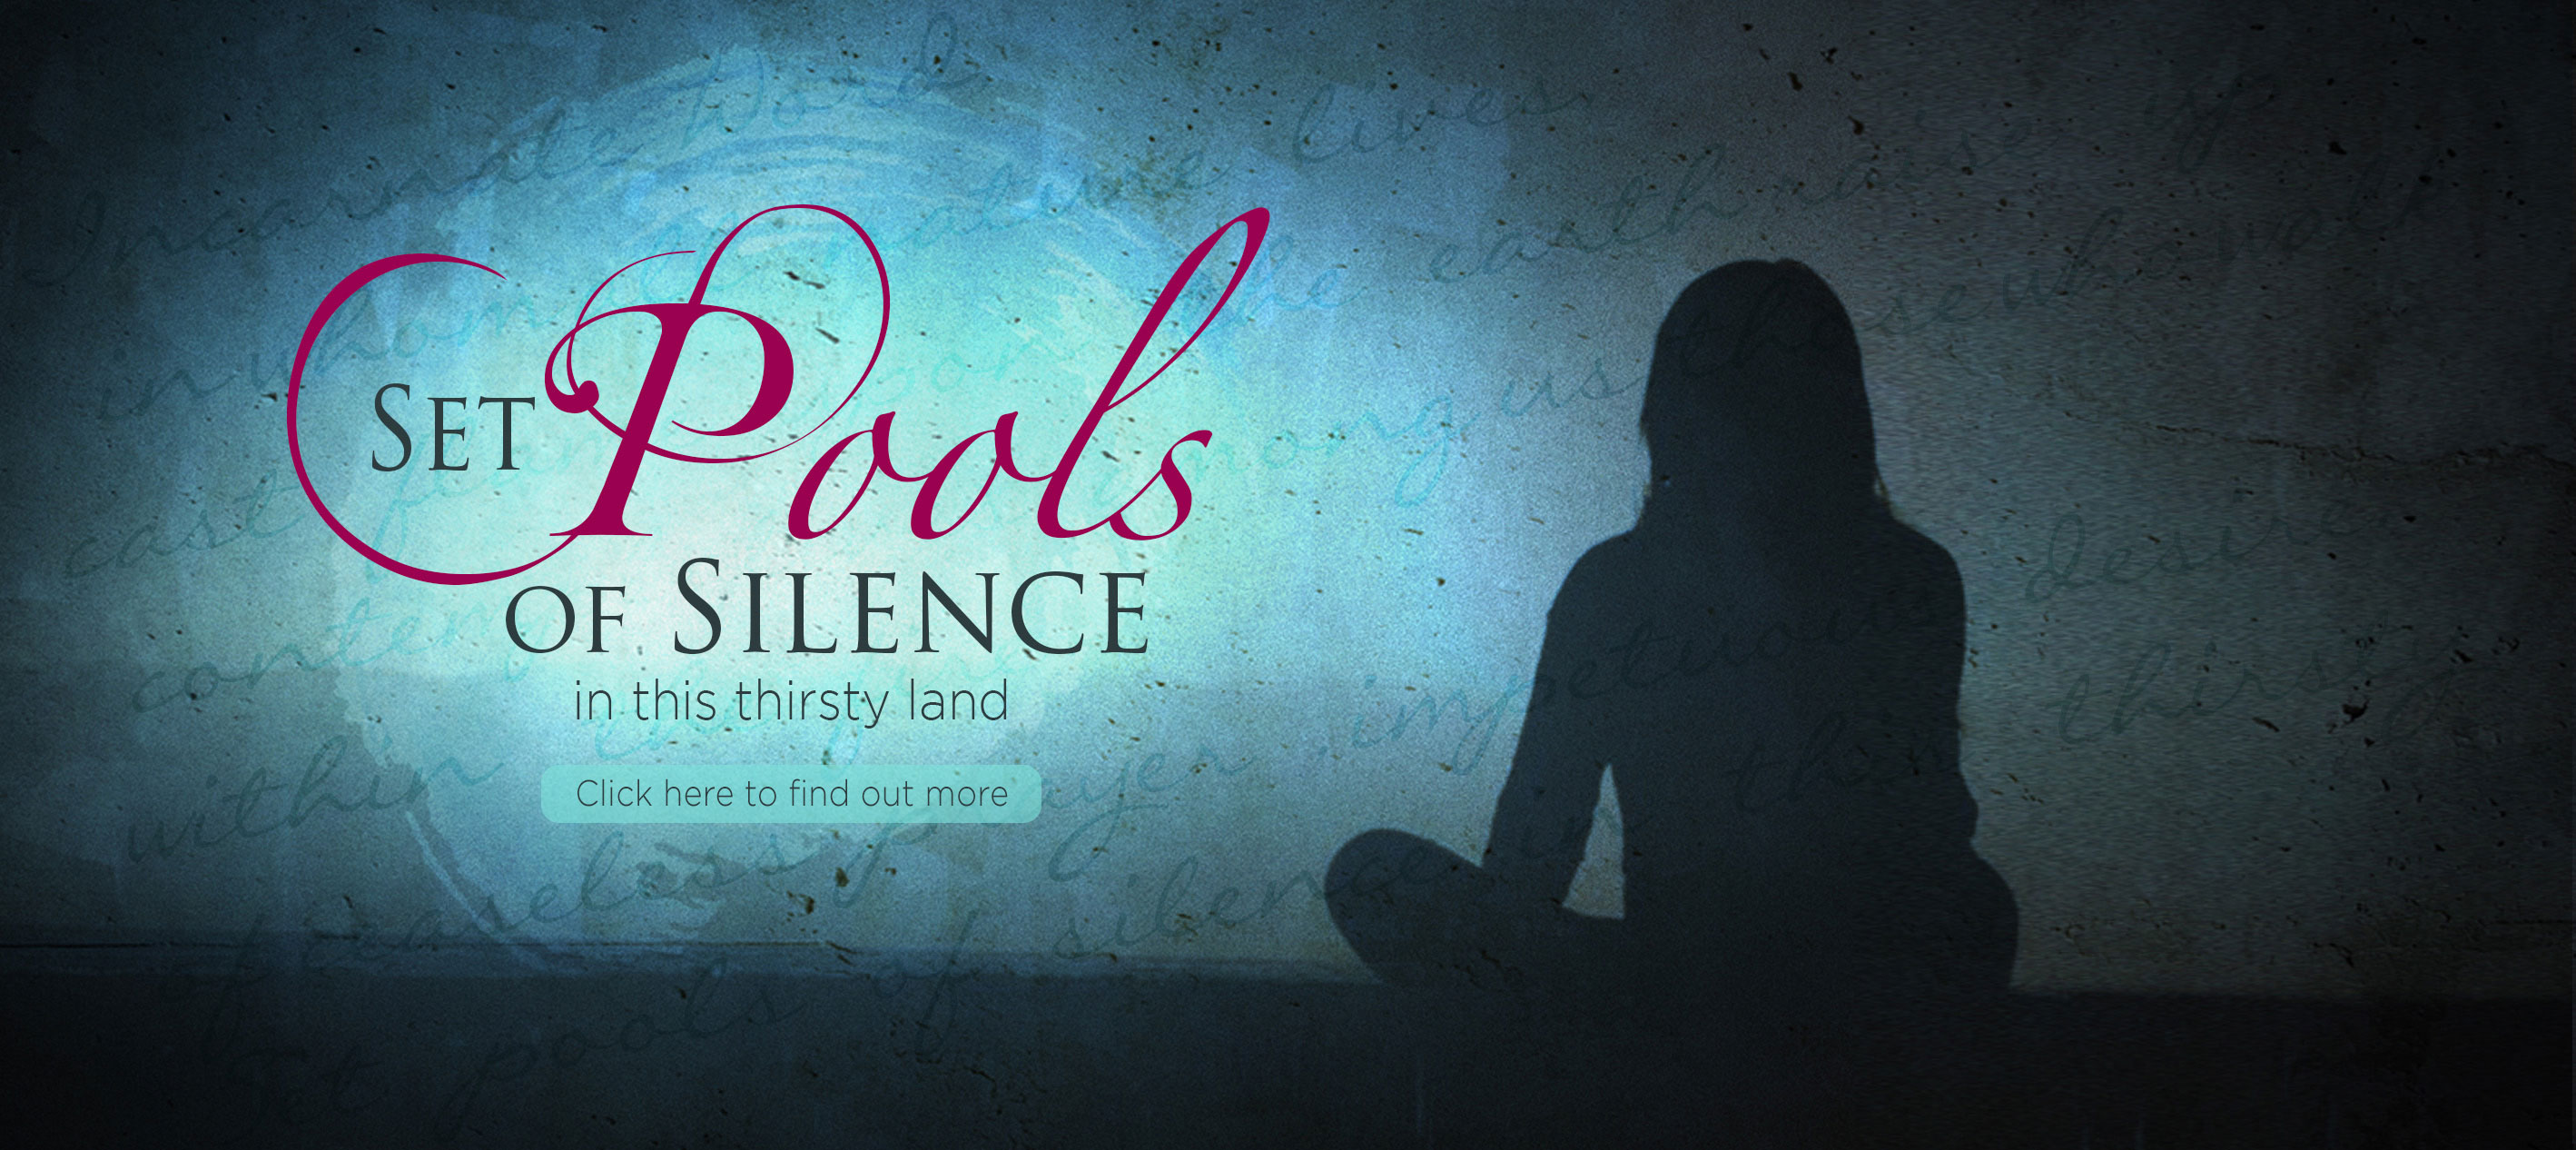 Advertisement for the Set Pools of Silence DVD